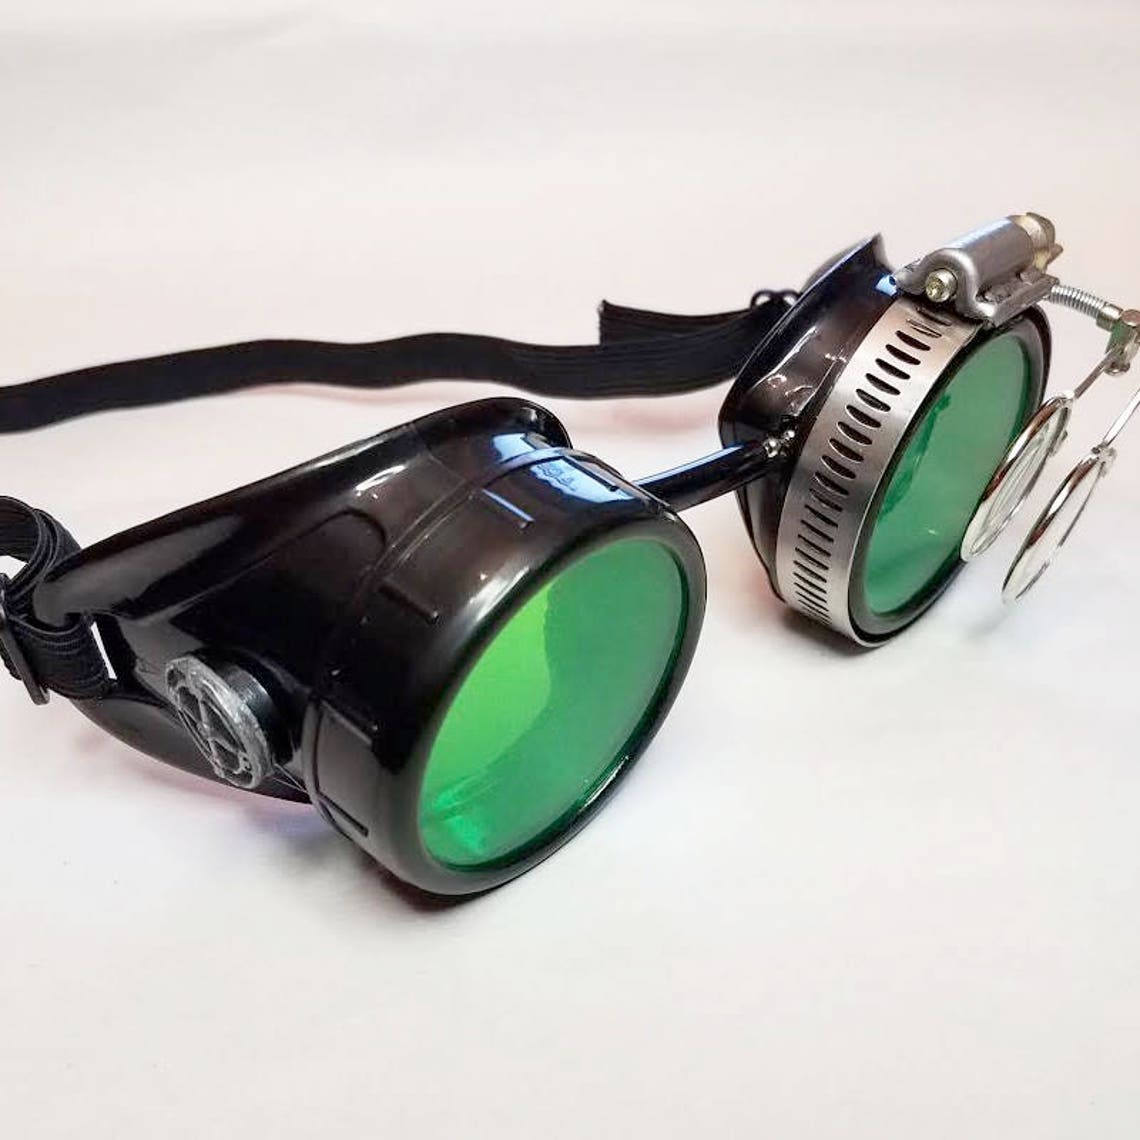 STEAMPUNK GOGGLES, Black with Green Lenses, Silver Compass Rose and Magnifying Loupes, Great for Halloween, Cosplay Costume or Birthday Gift